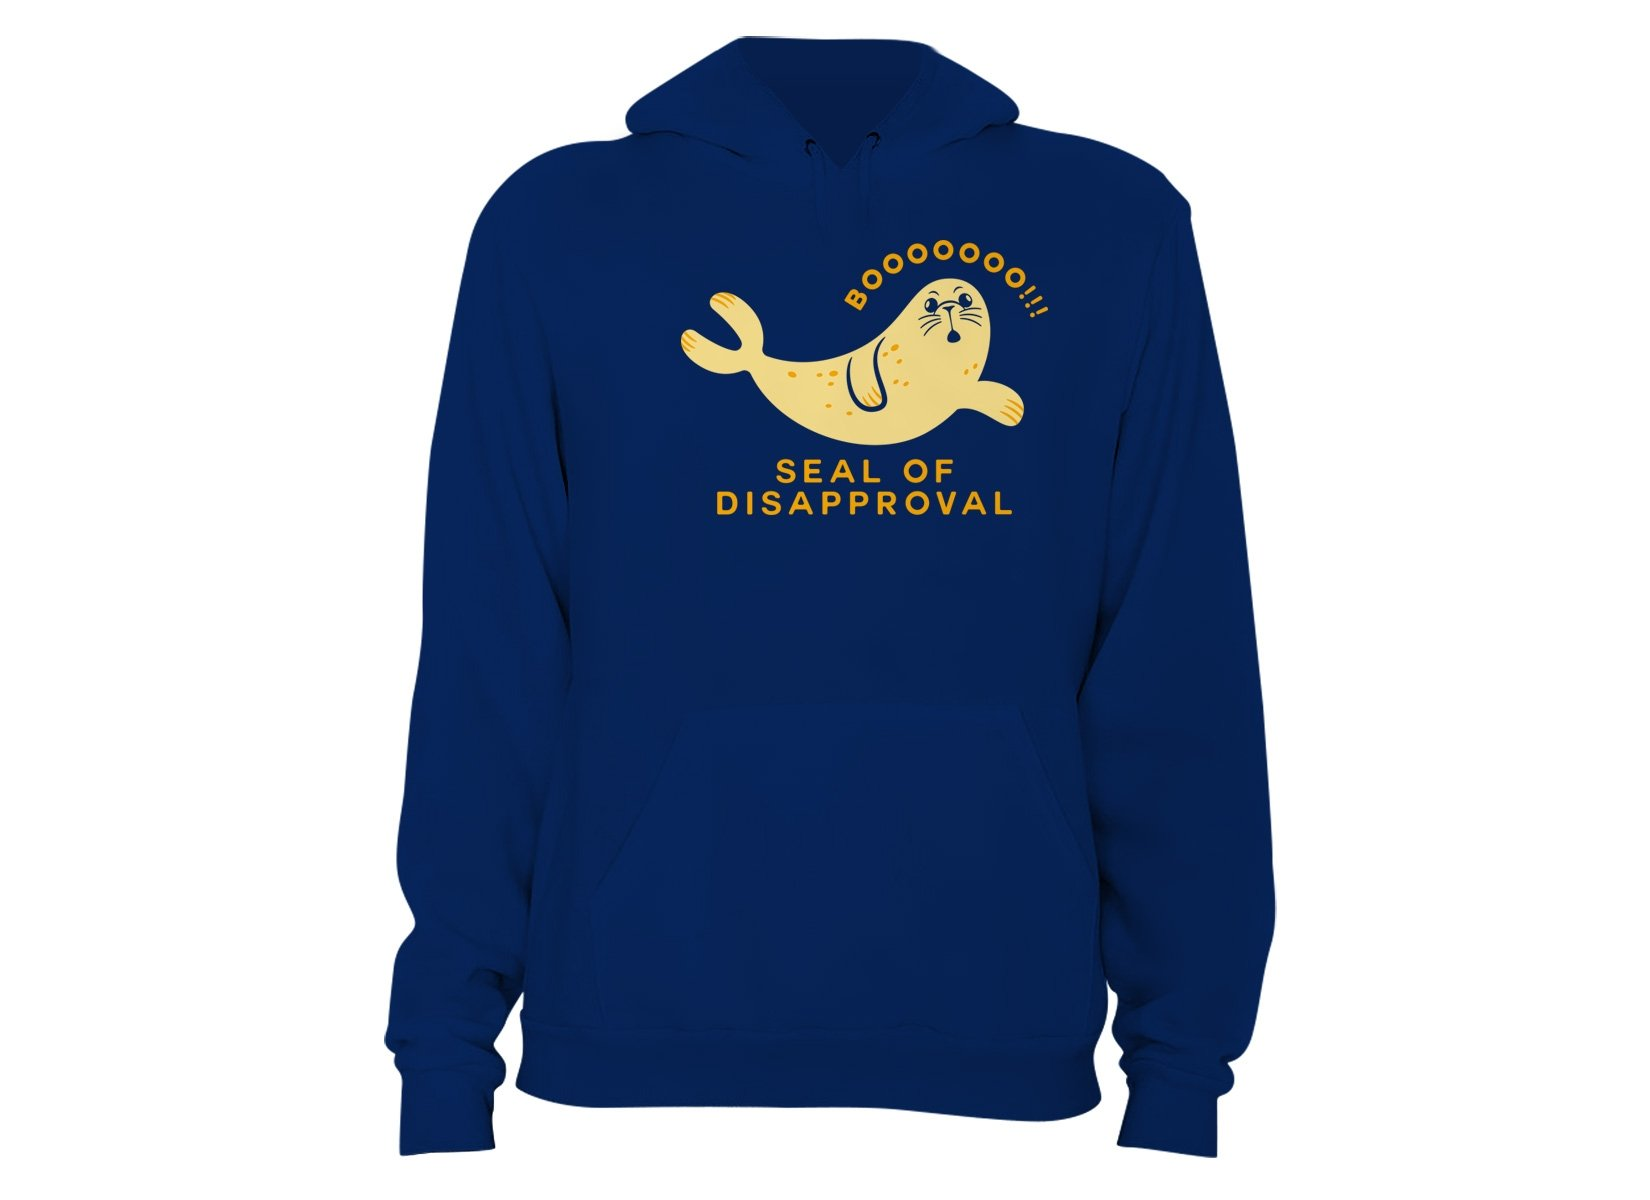 Seal Of Disapproval on Hoodie